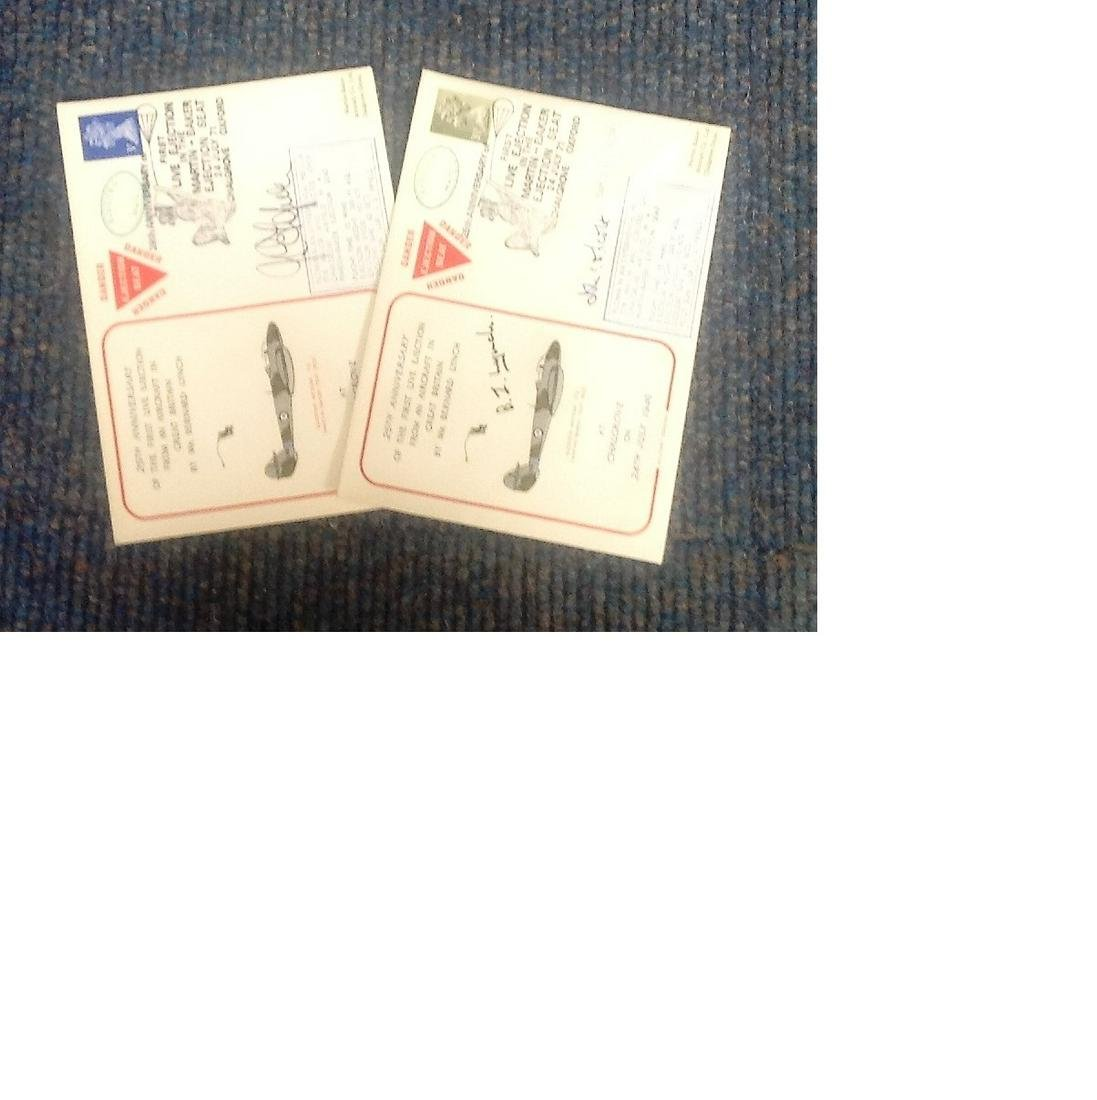 Ejection seat cover collection. 2 covers one signed by